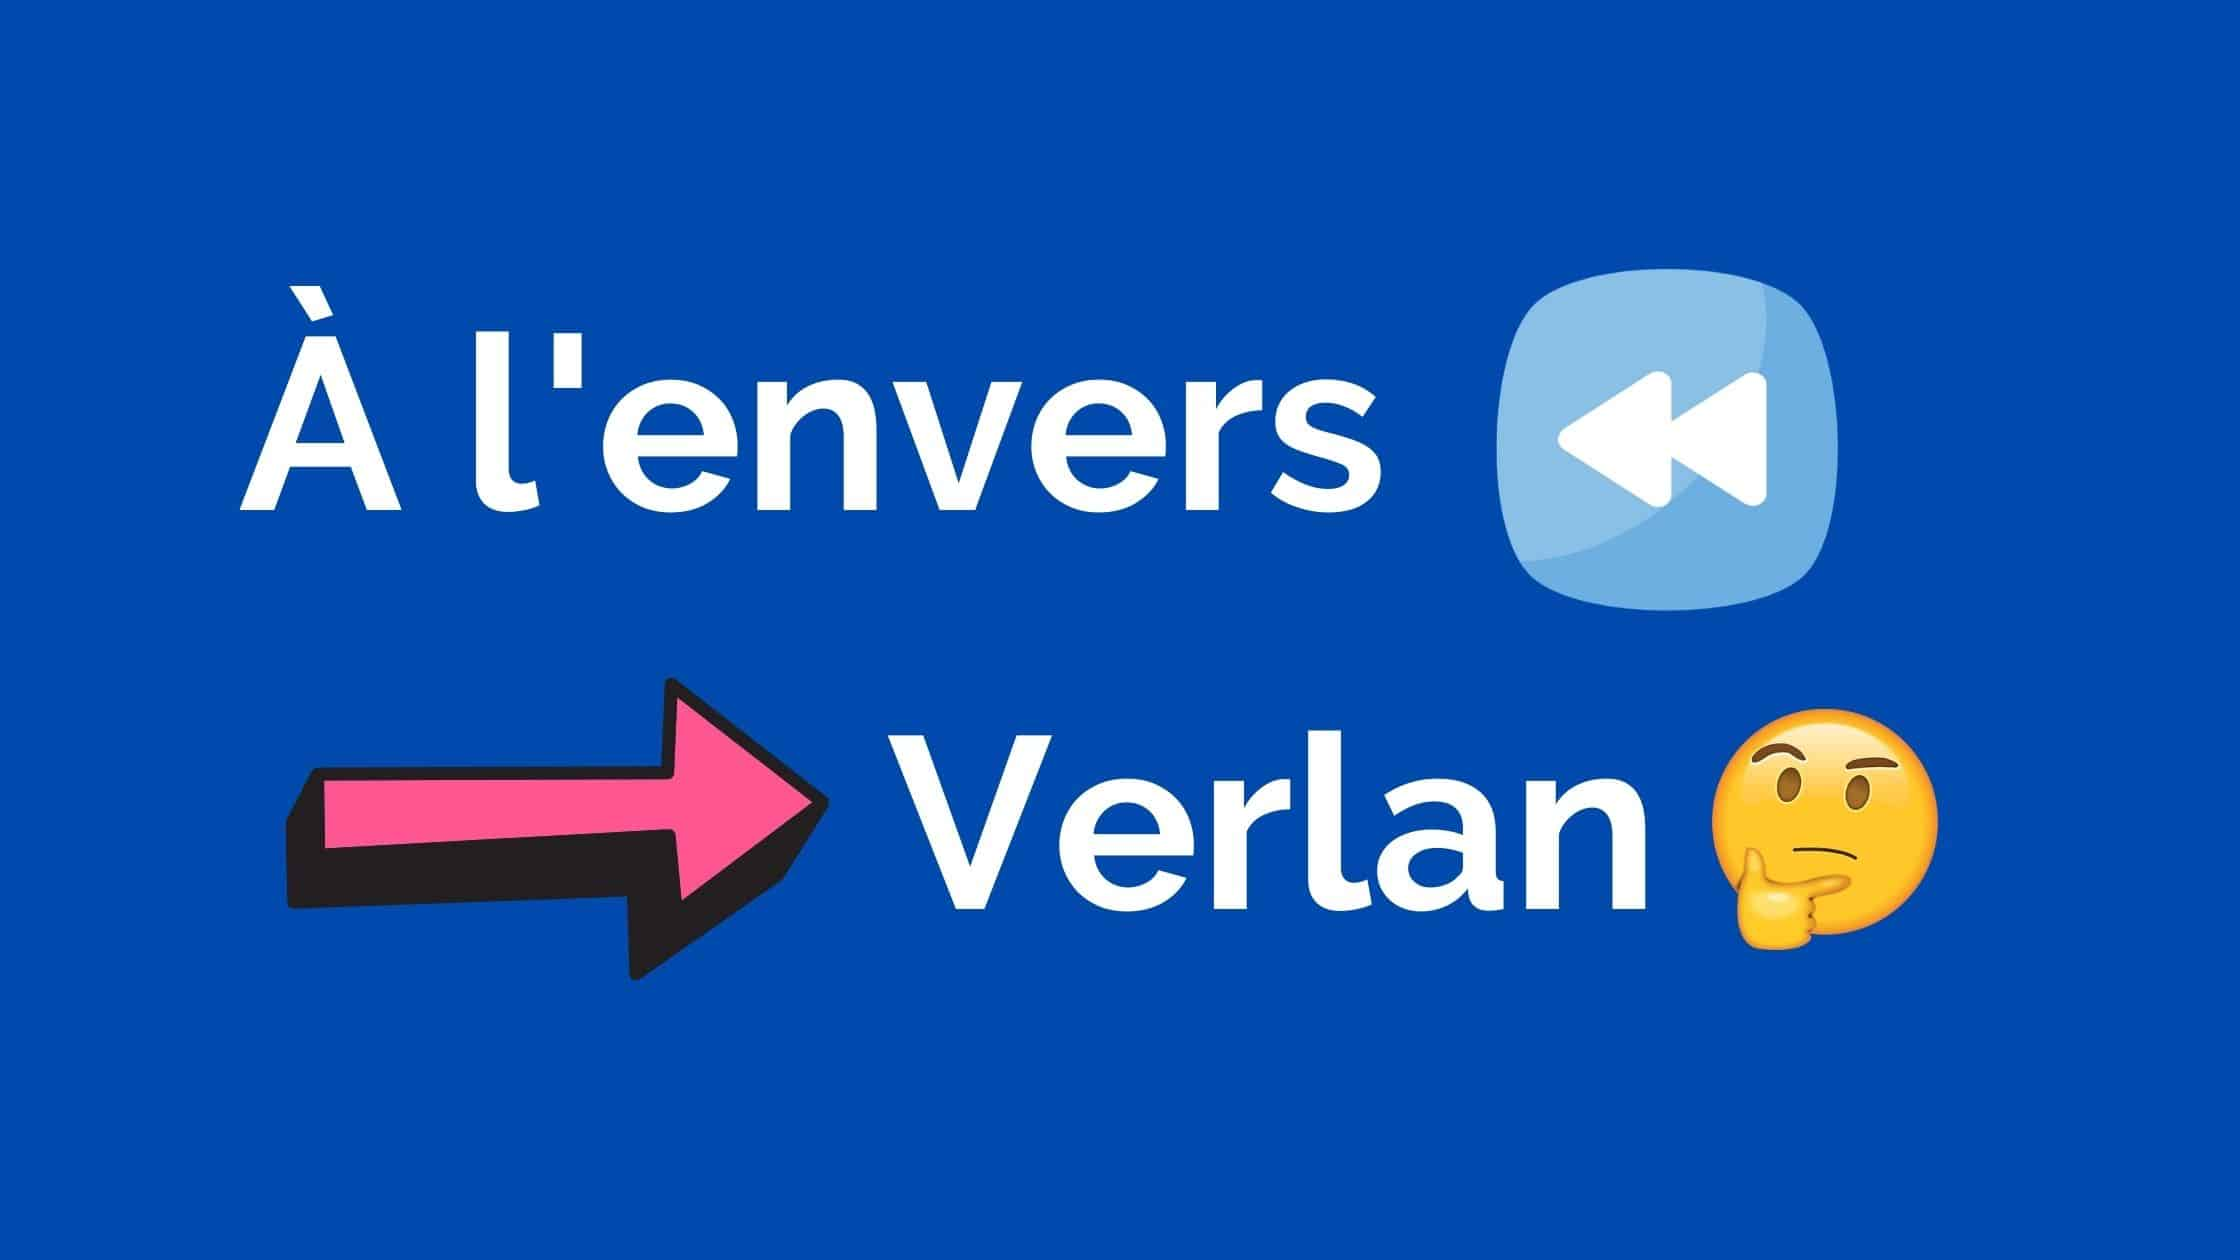 What is the backward French slang of Verlan? - French Iceberg